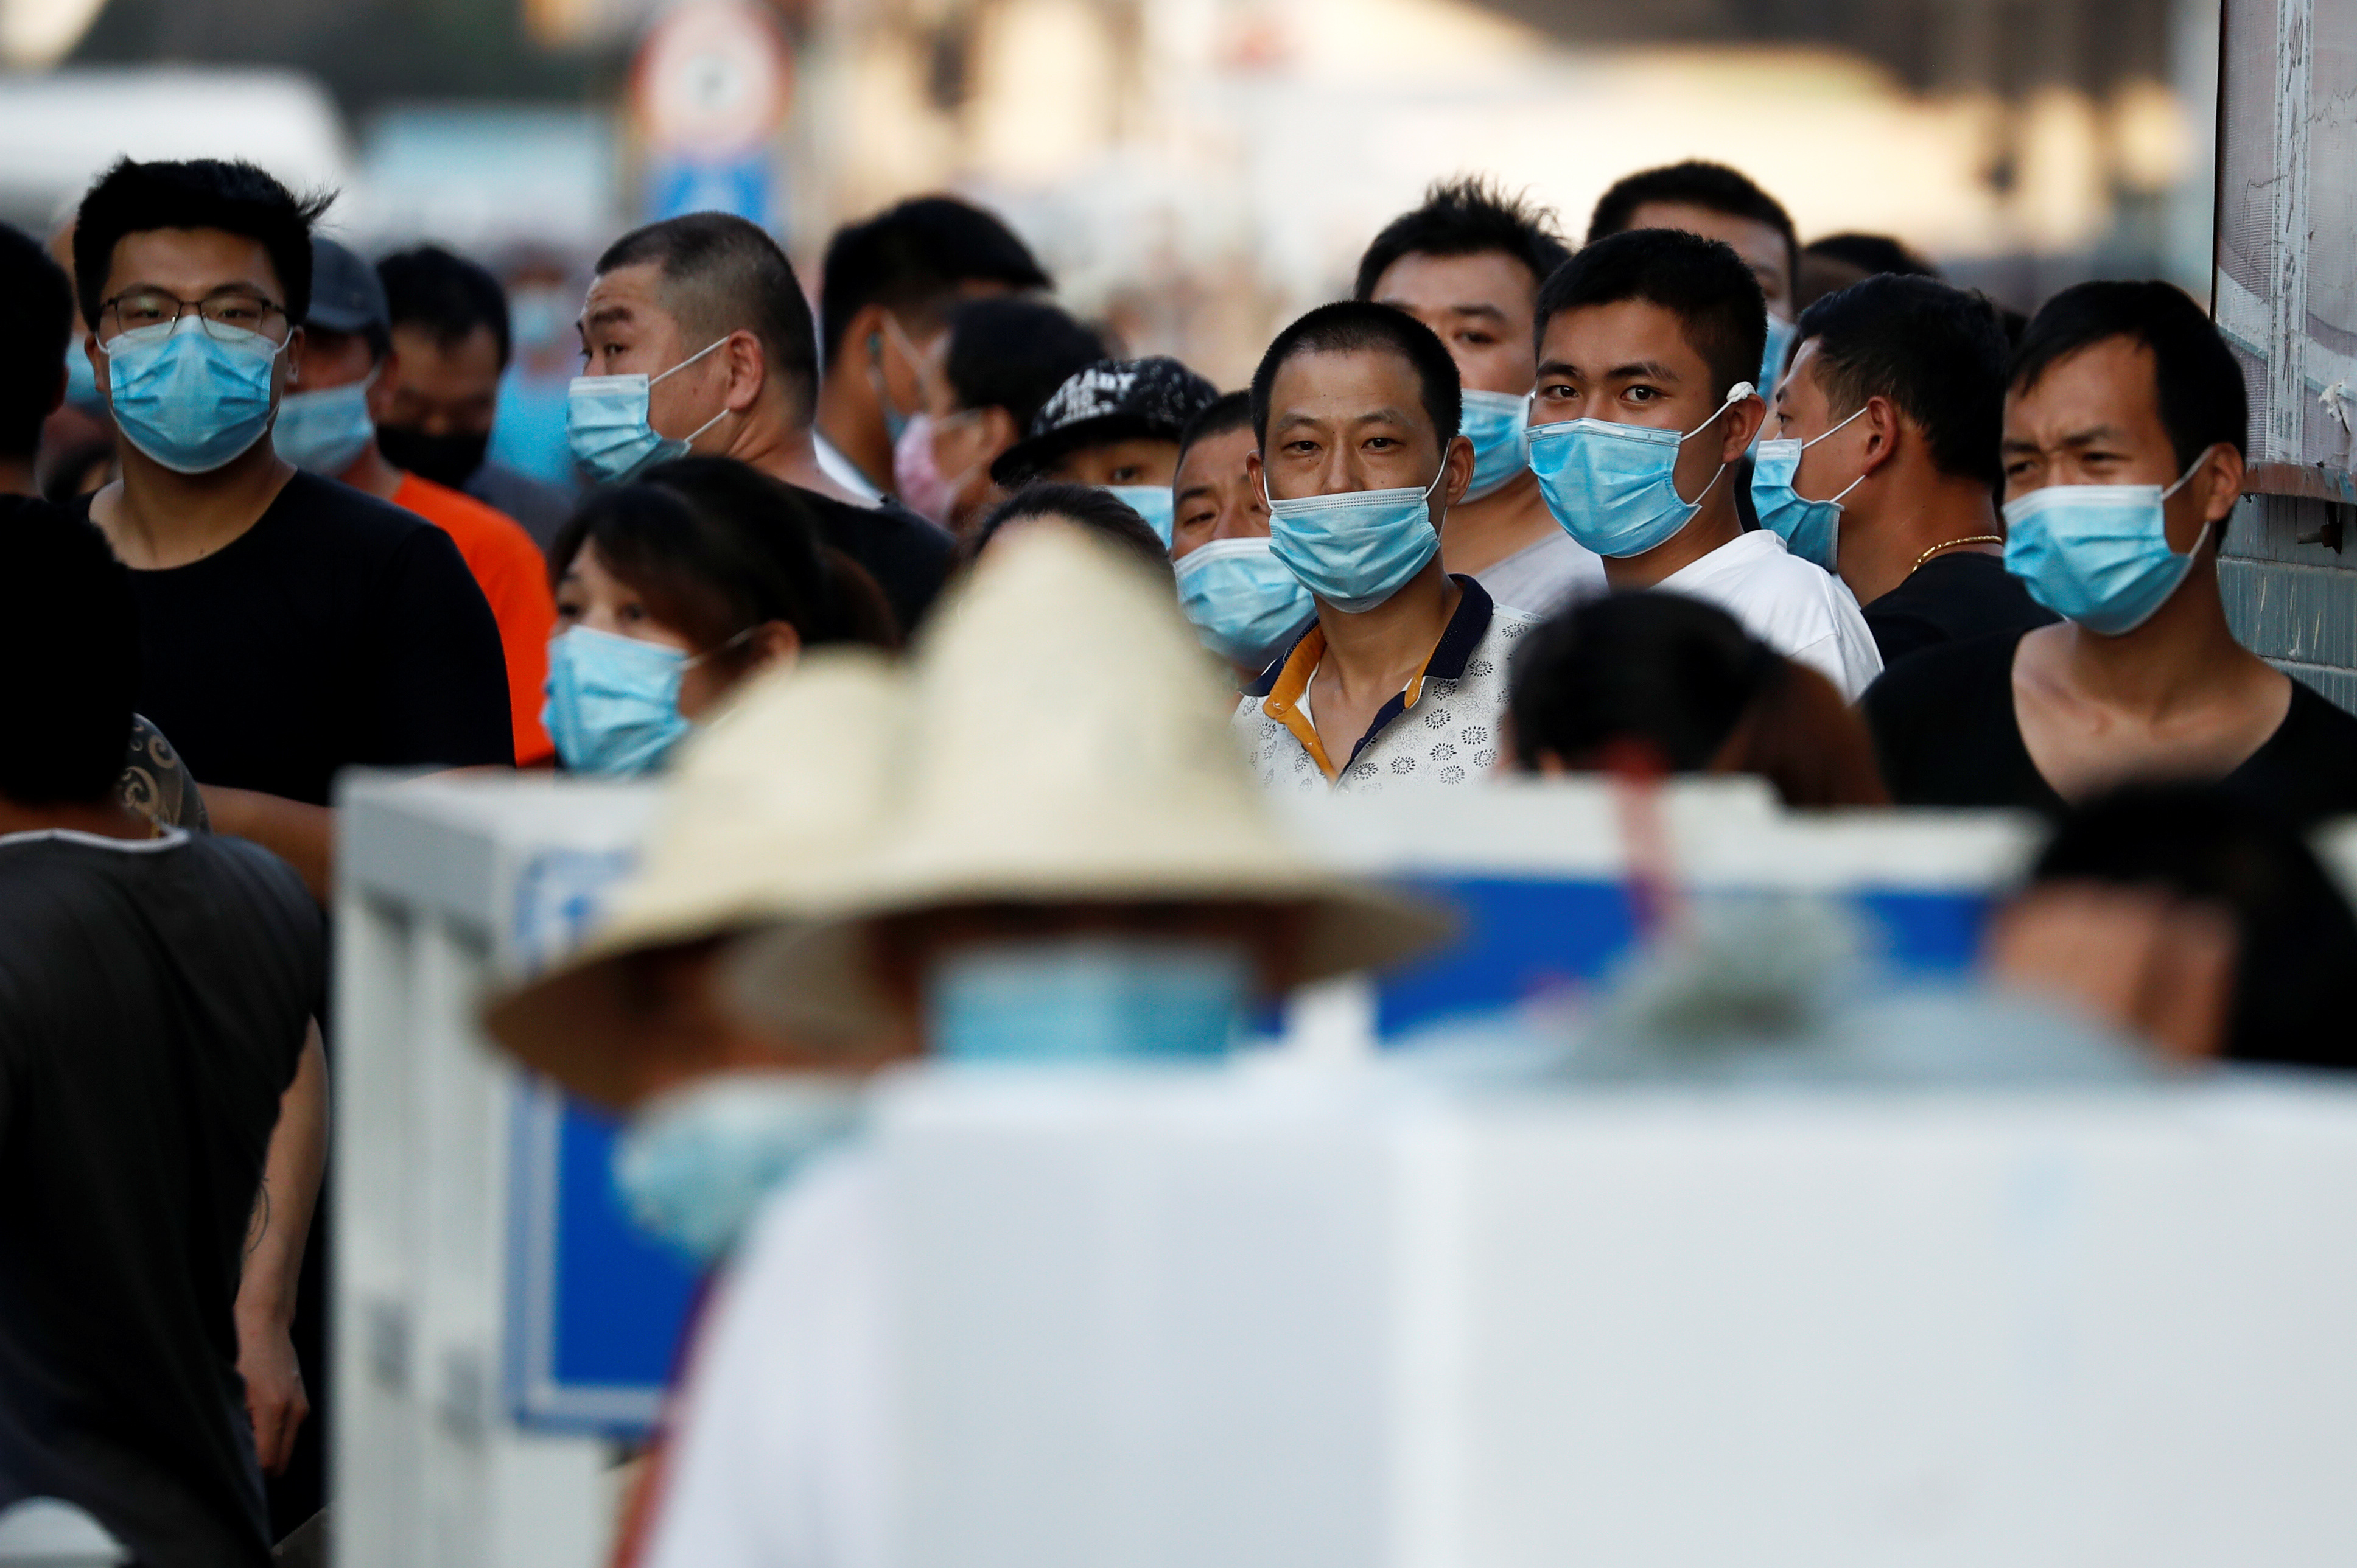 People are wearing face masks inside the Jingshen seafood market which has been closed for business after new coronavirus infections were detected, in Beijing, China, June 12, 2020. Photo: Reuters